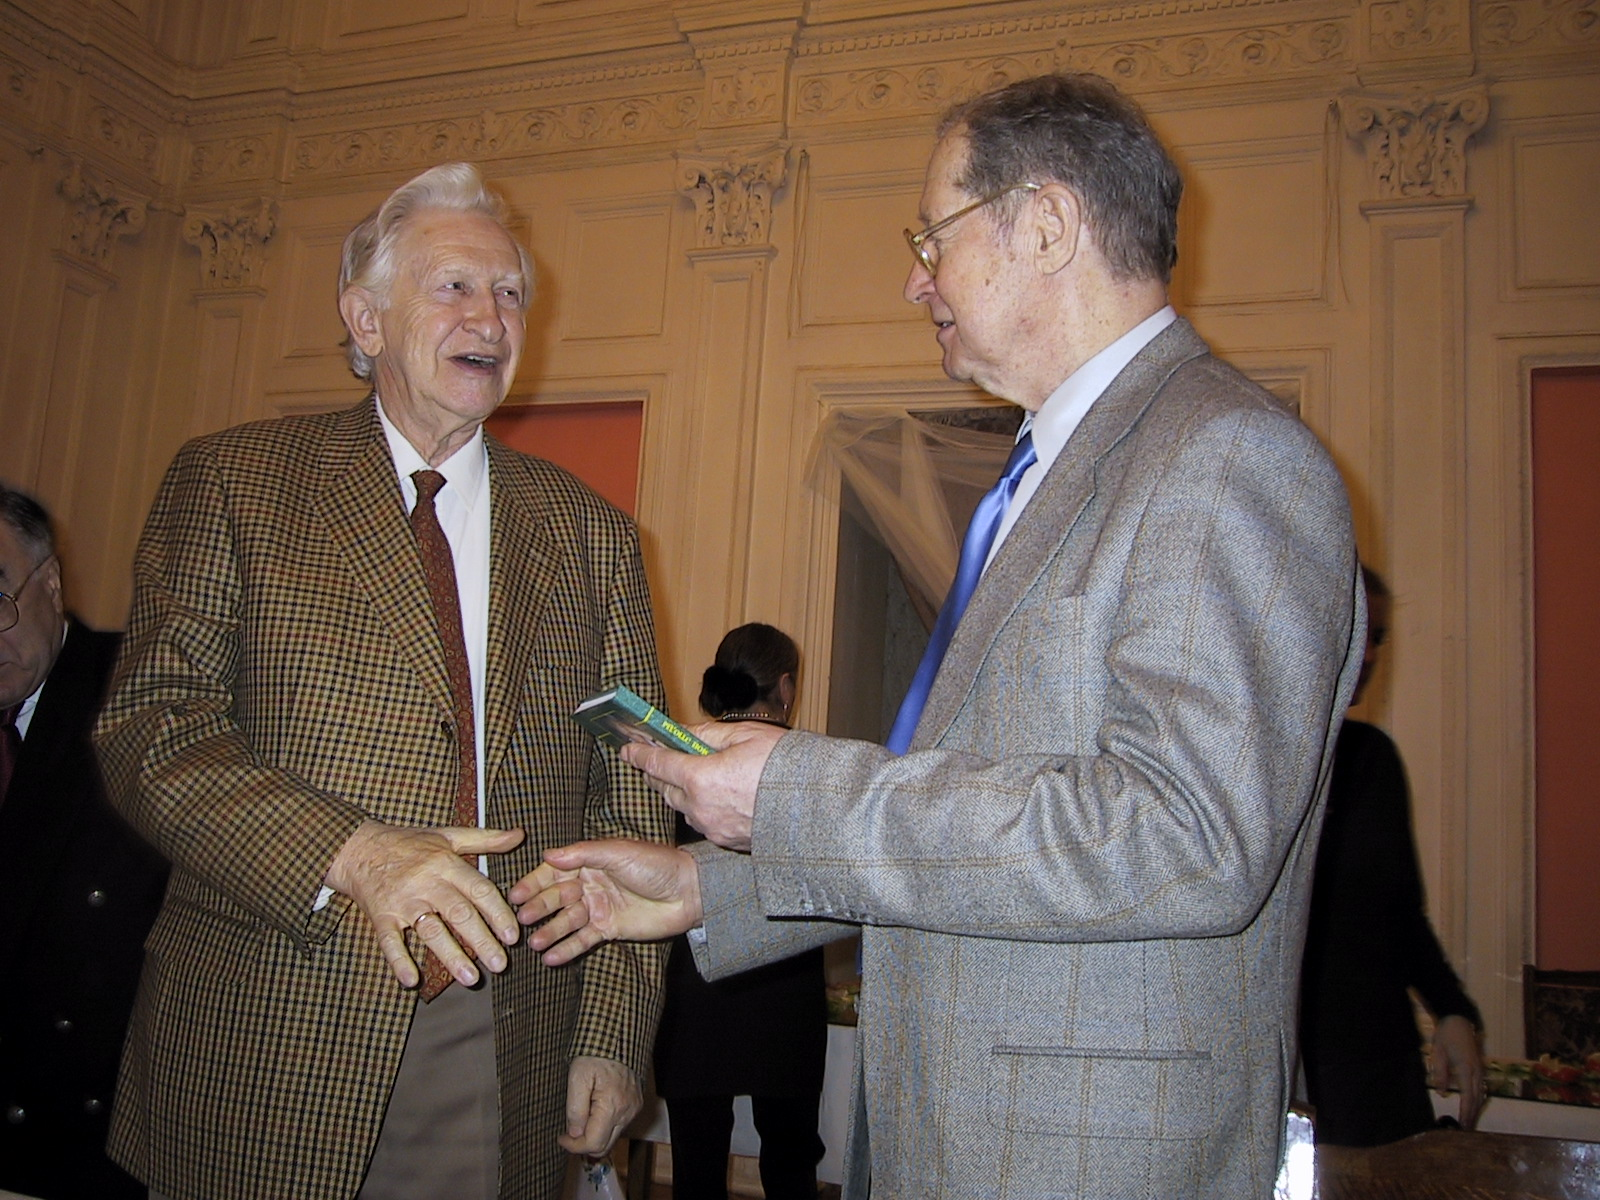 Vasily Smyslov congratulates Yuri Averbakh at his 80th birthday and presents him with a book of his own chess studies.